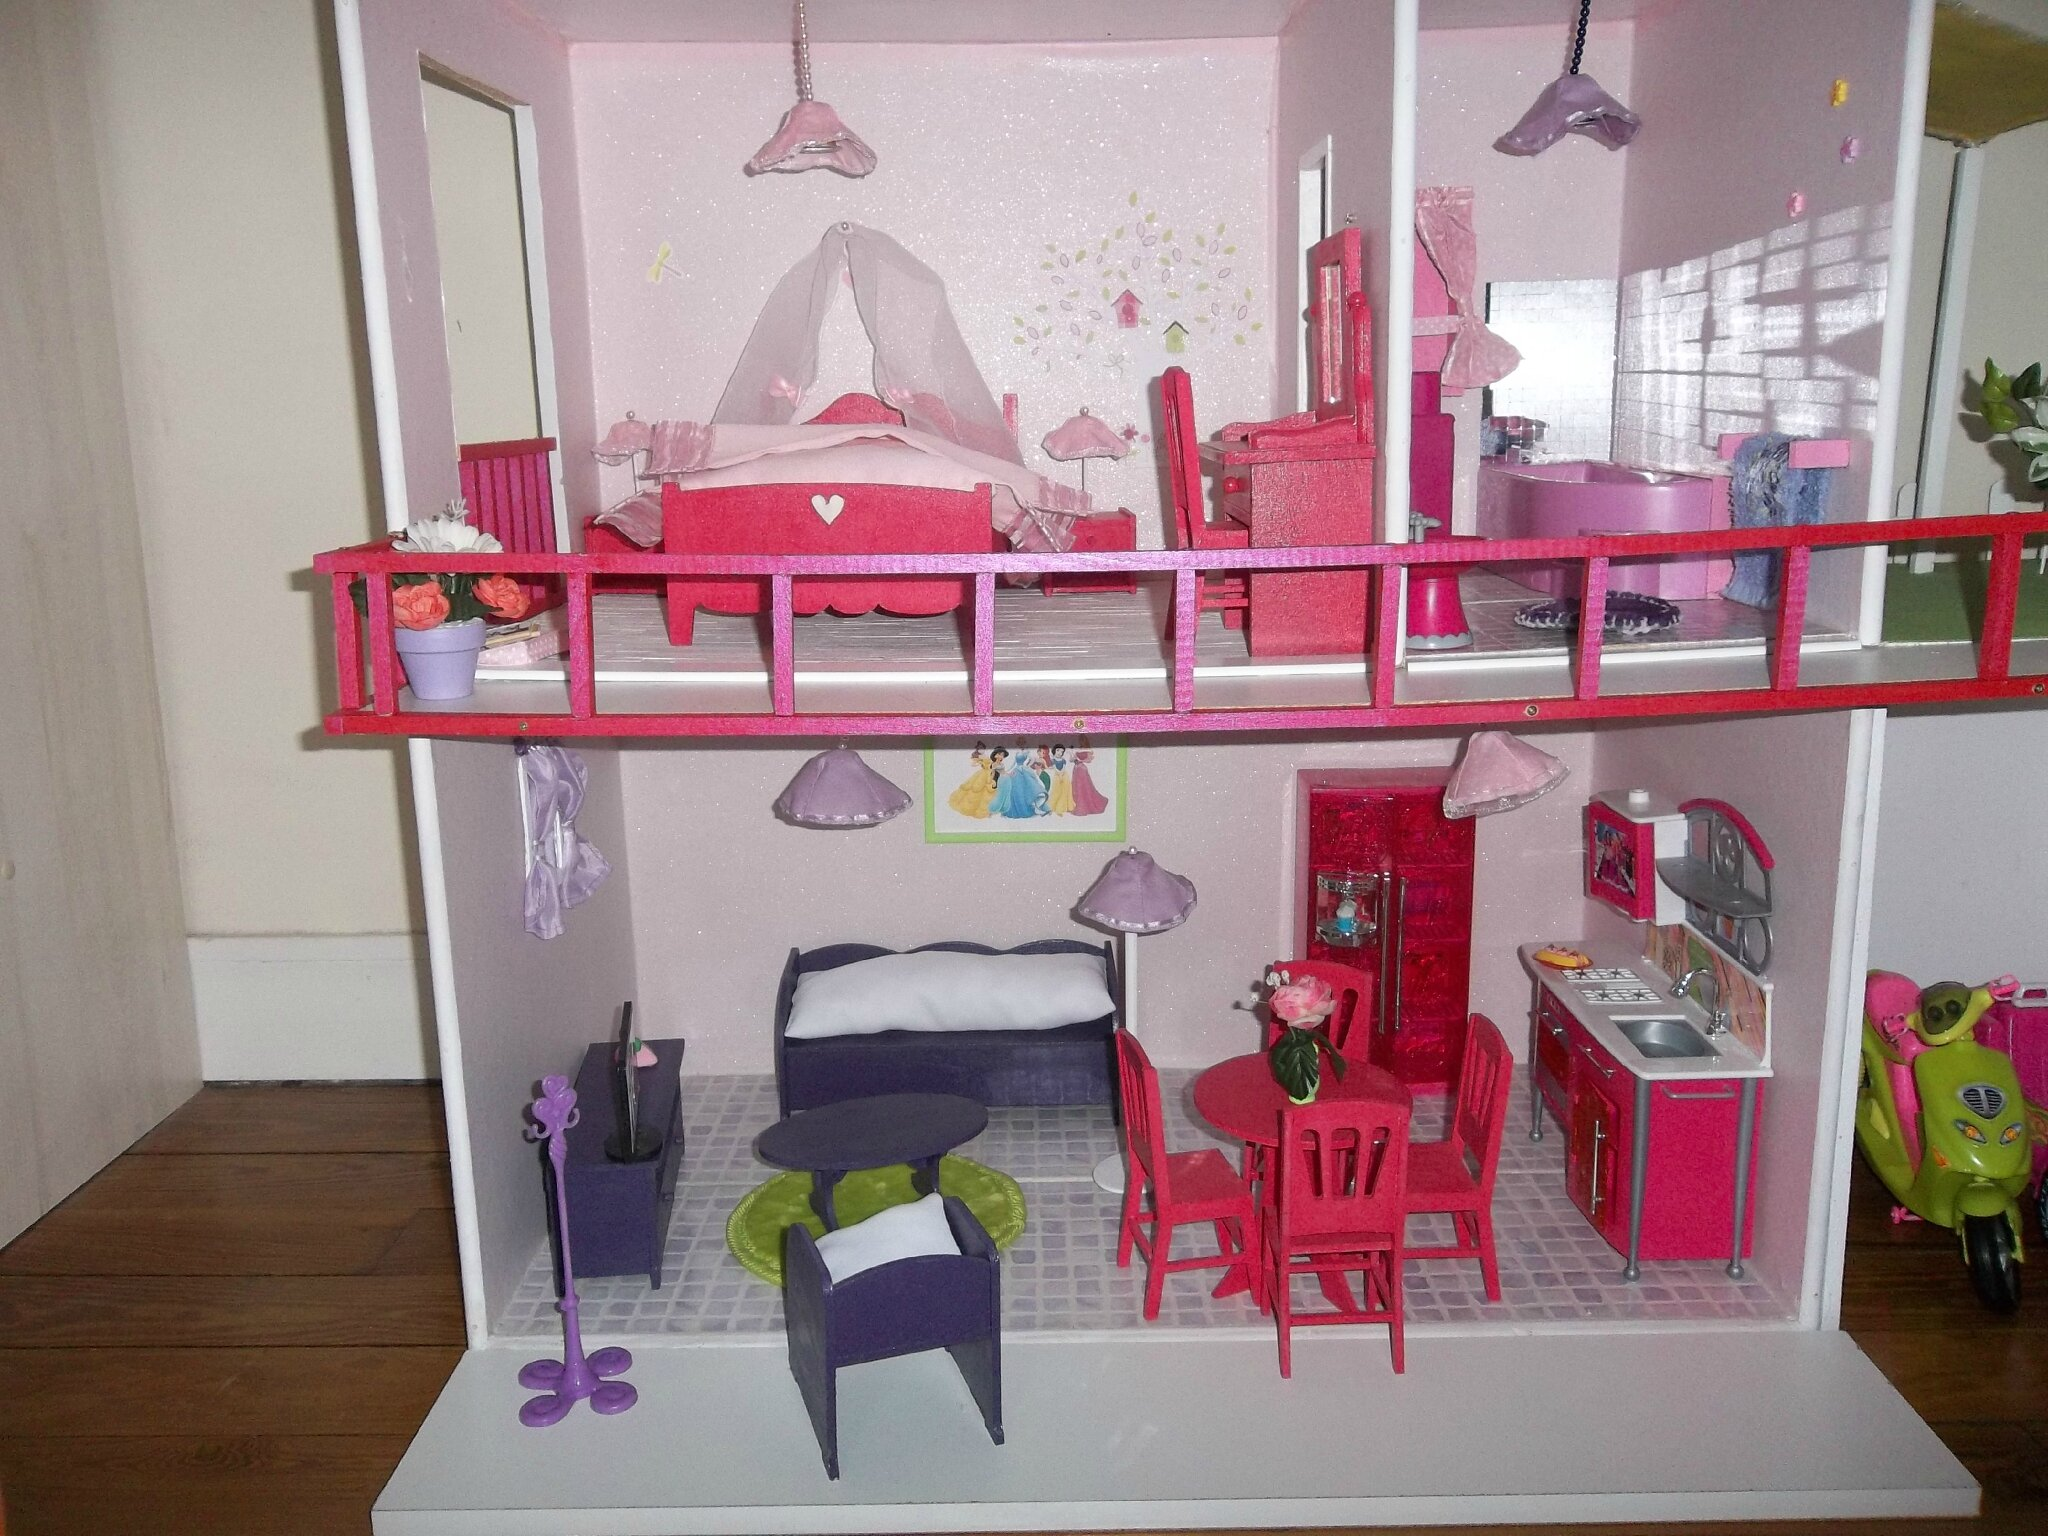 fabrication maisons de poup e barbie construction de maisons de poup e barbie. Black Bedroom Furniture Sets. Home Design Ideas